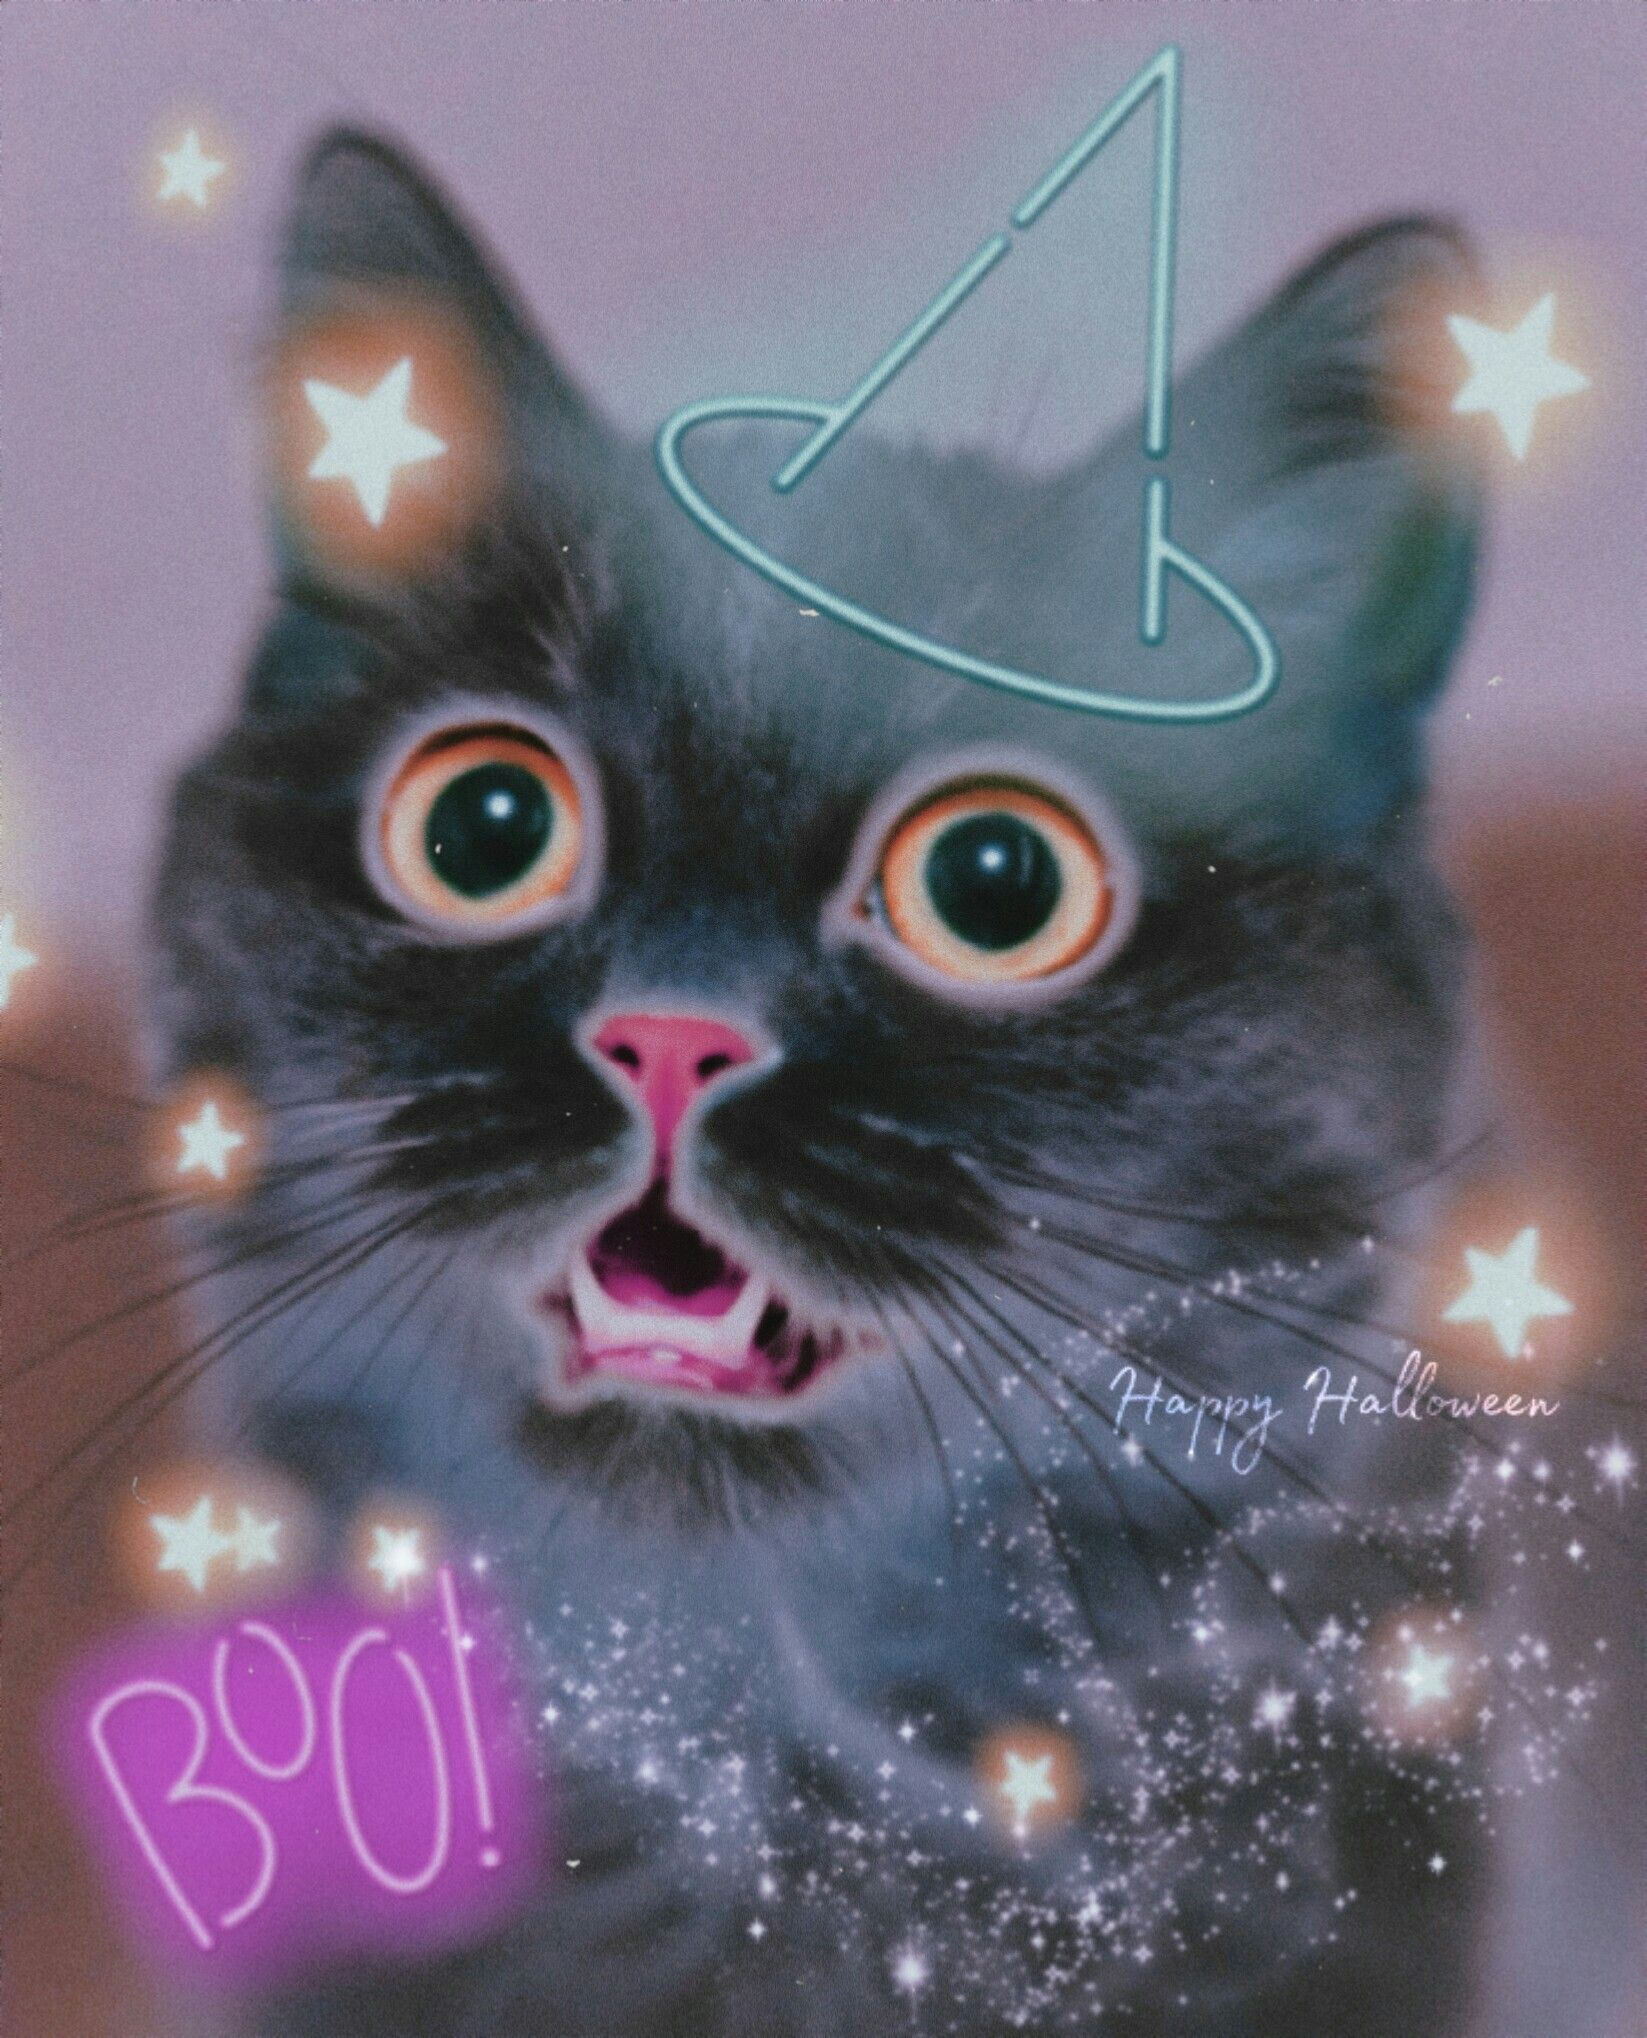 #halloween #spooky #madewithpicsart #madebyme #cat #cute #magical #stars #witchhat #colorful @picsart Op from @freetoedit, stars sticker from @pann70